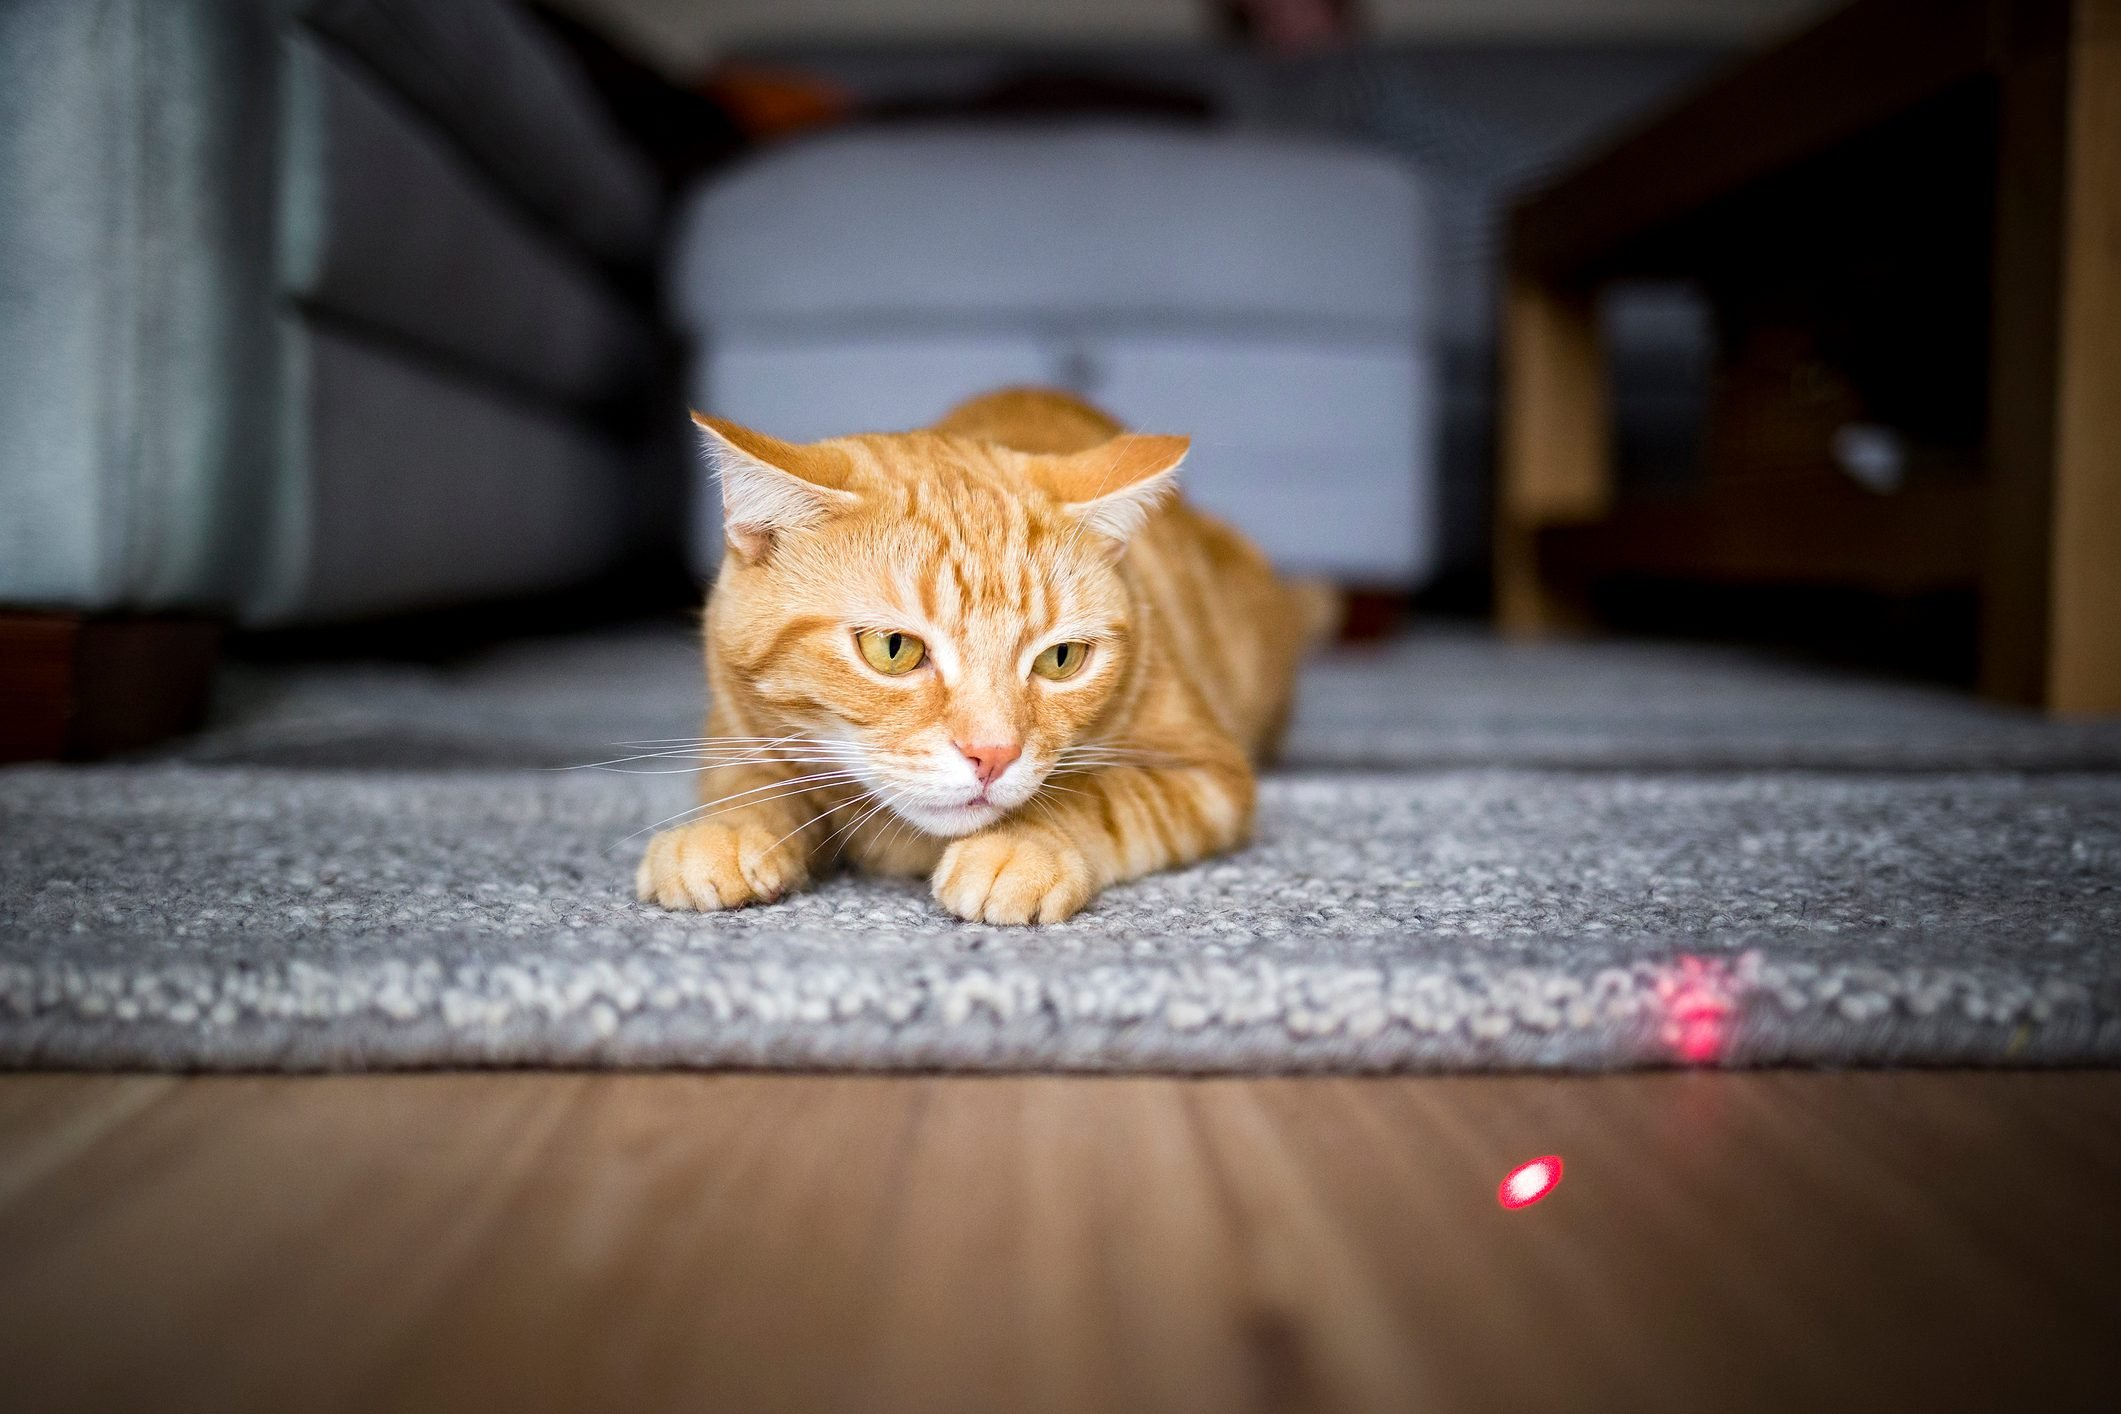 cat staring at the light of a laser pointer on the floor